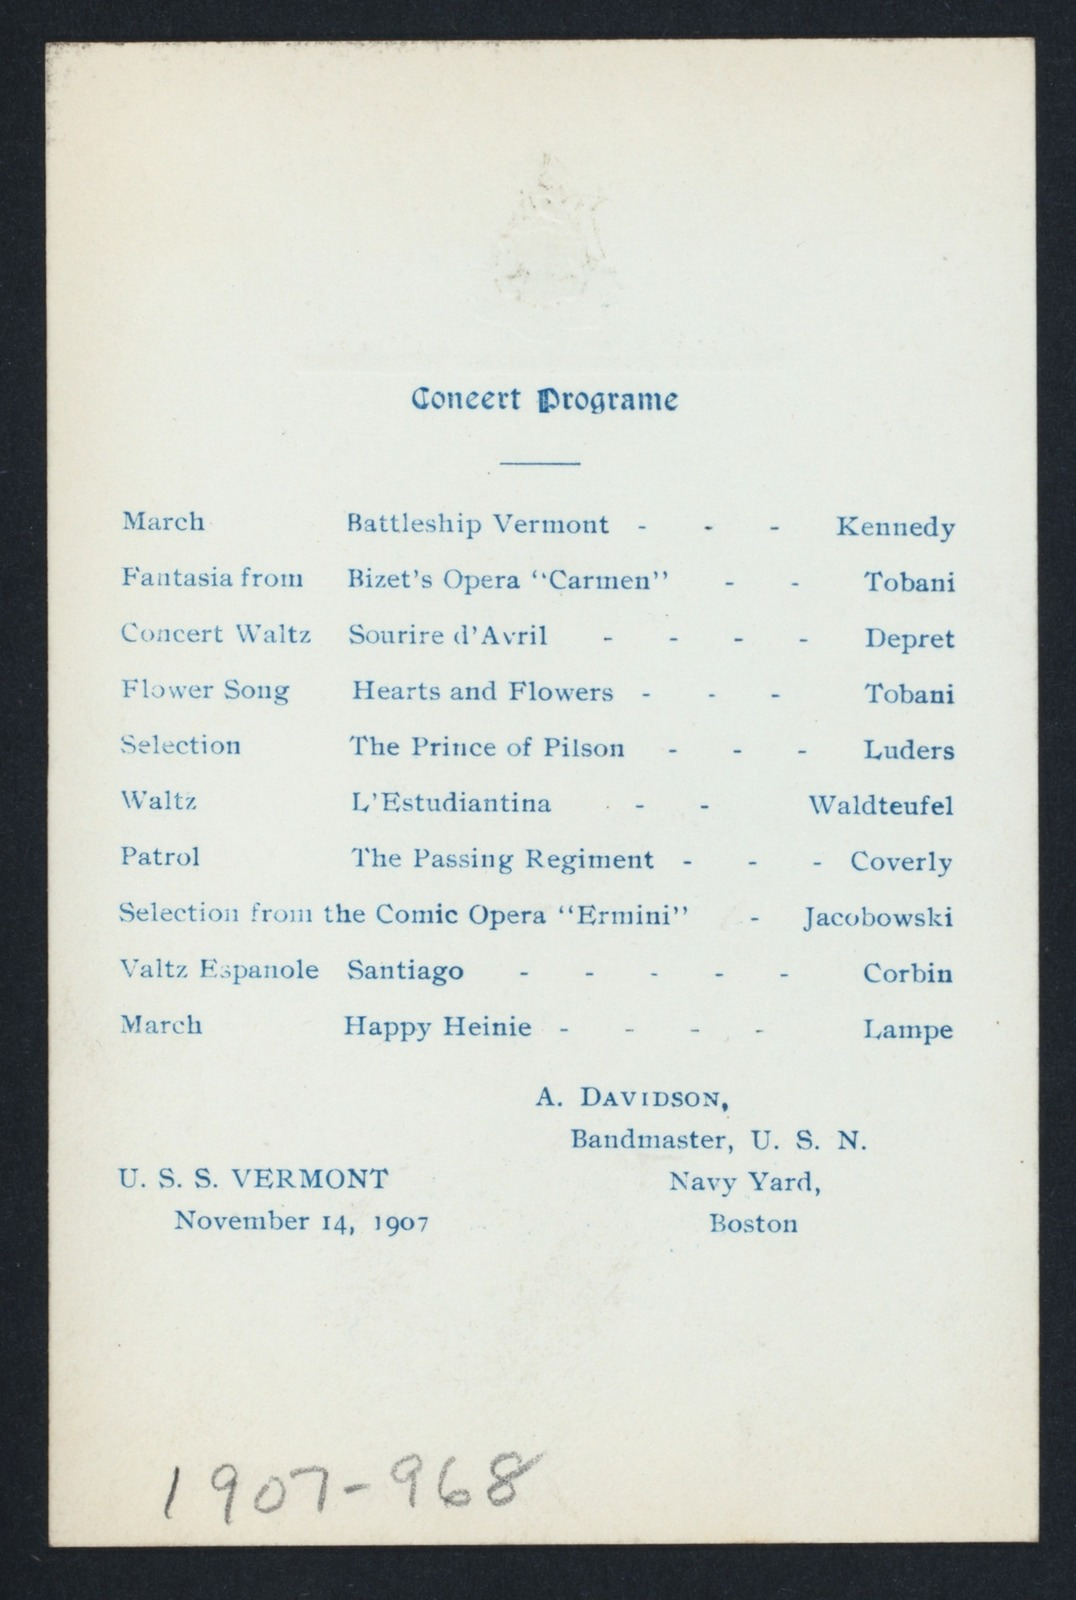 DINNER [held by] UNITED STATES SHIP VERMONT [at] ABOARD (SS;)